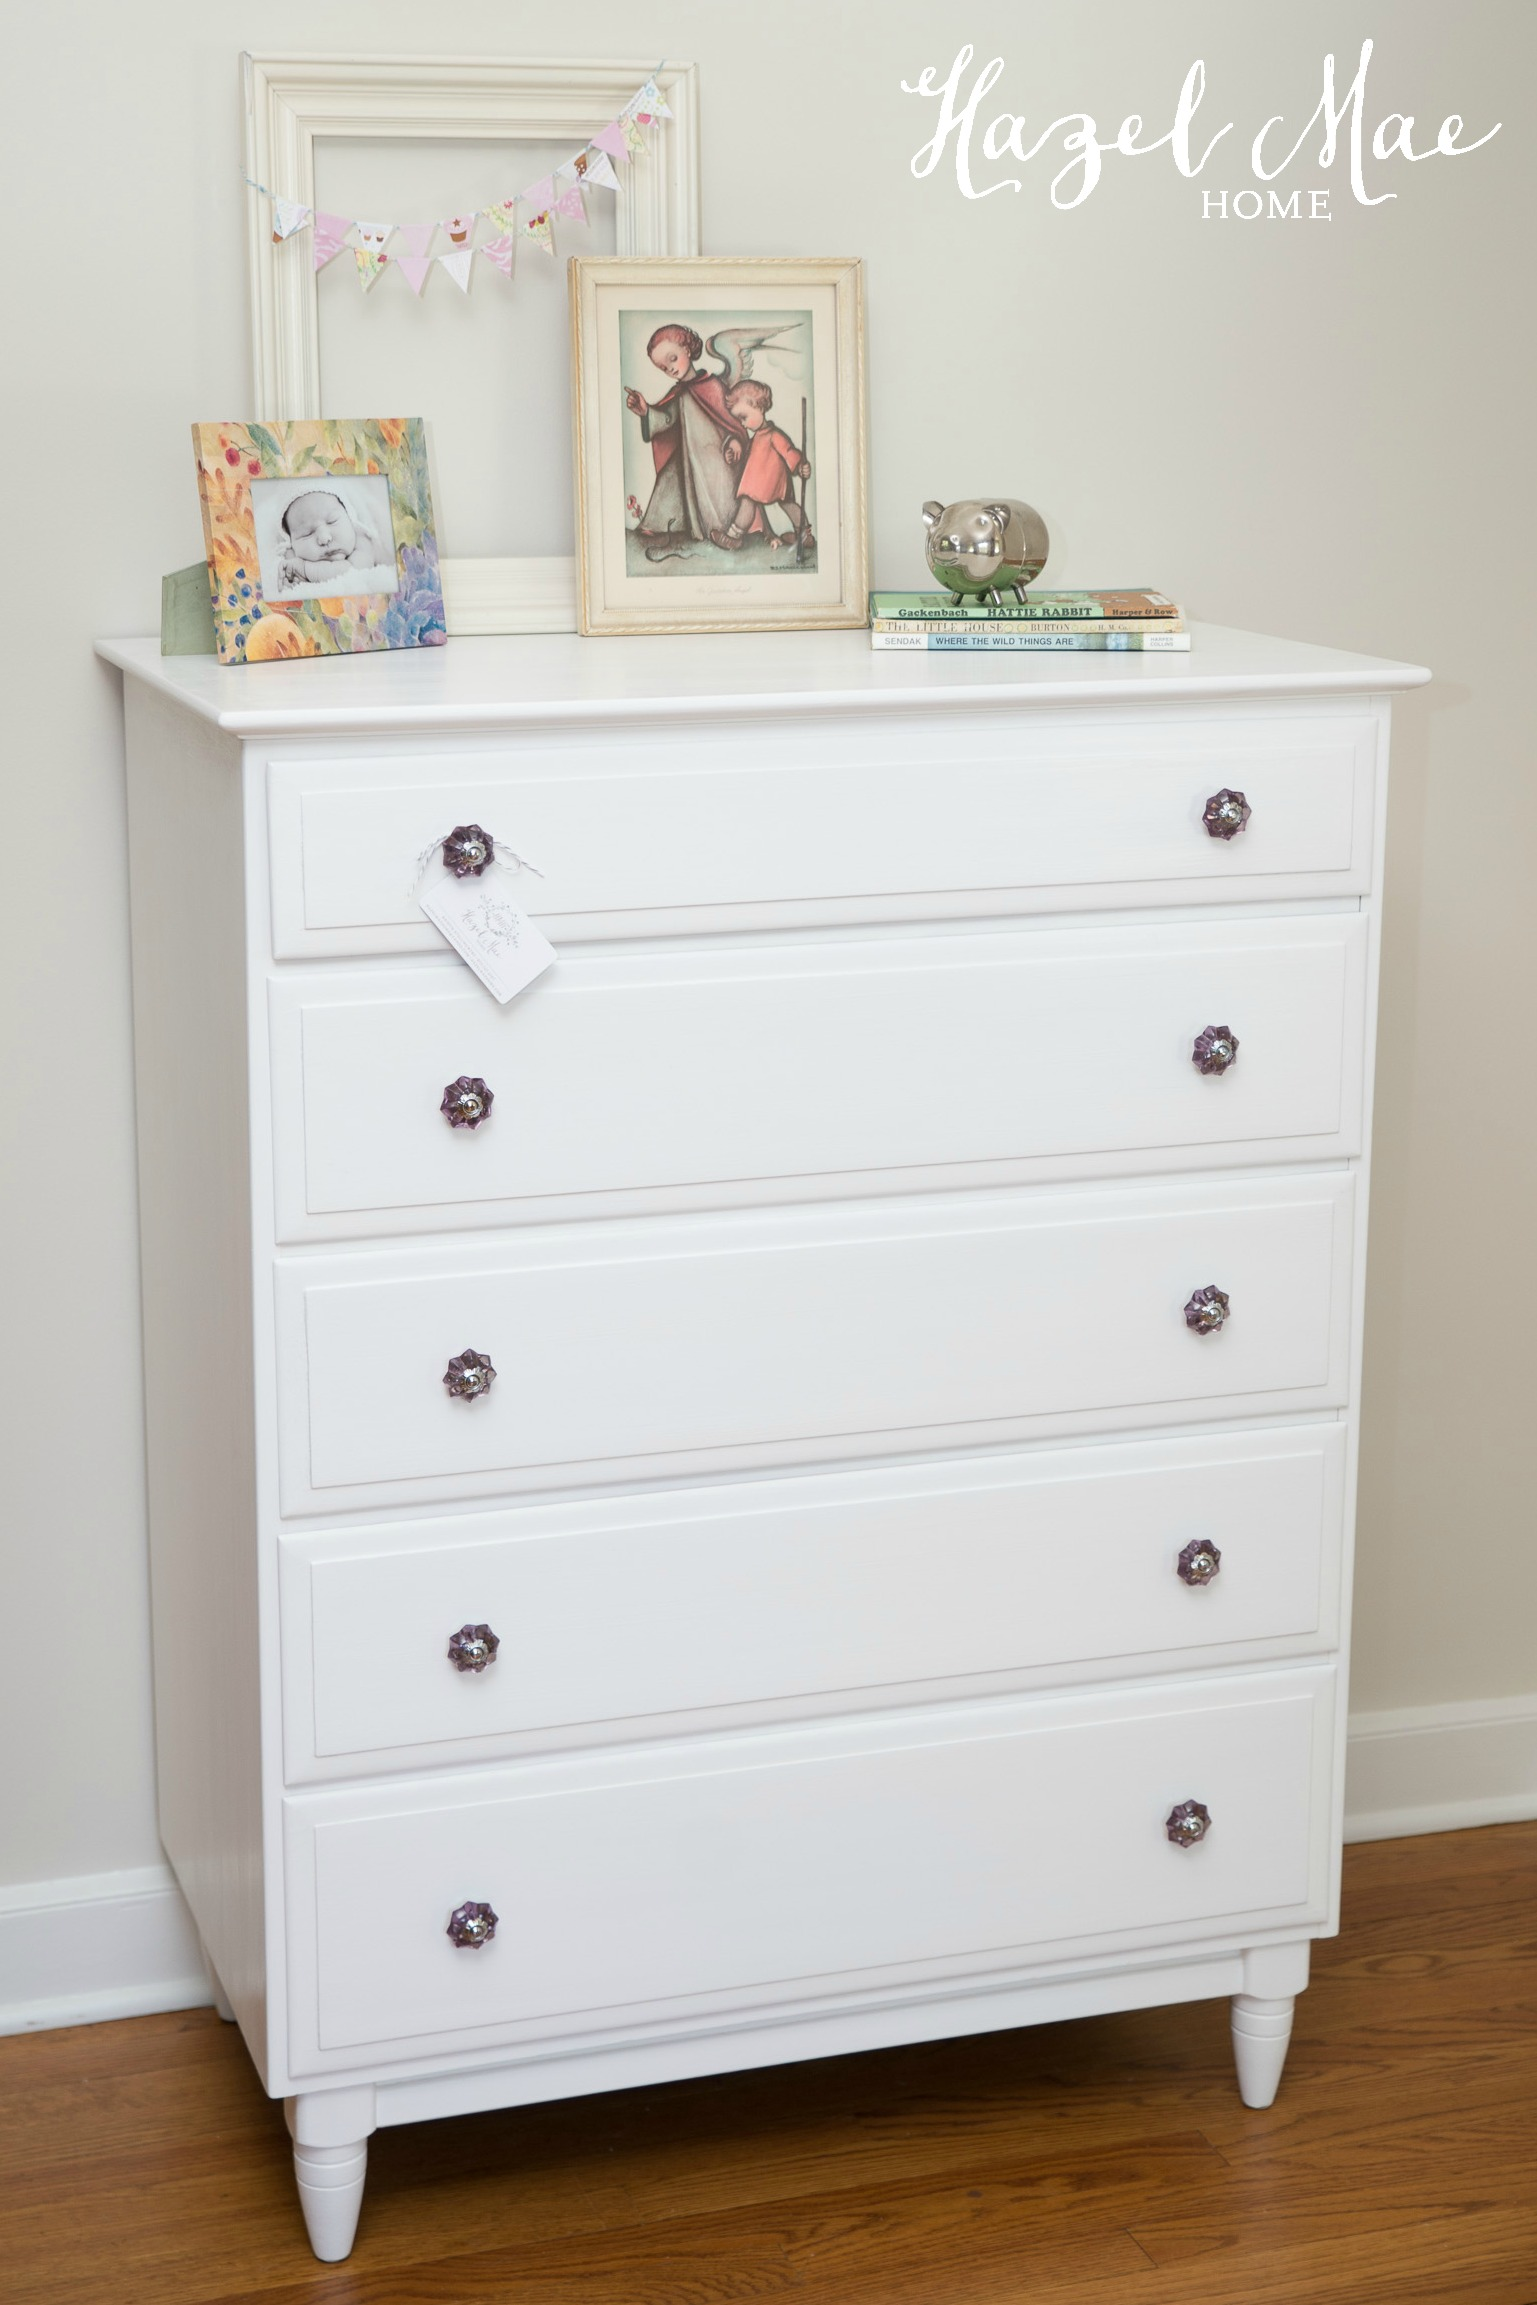 Dresser Redesigned In Pure White Hazel Mae Home